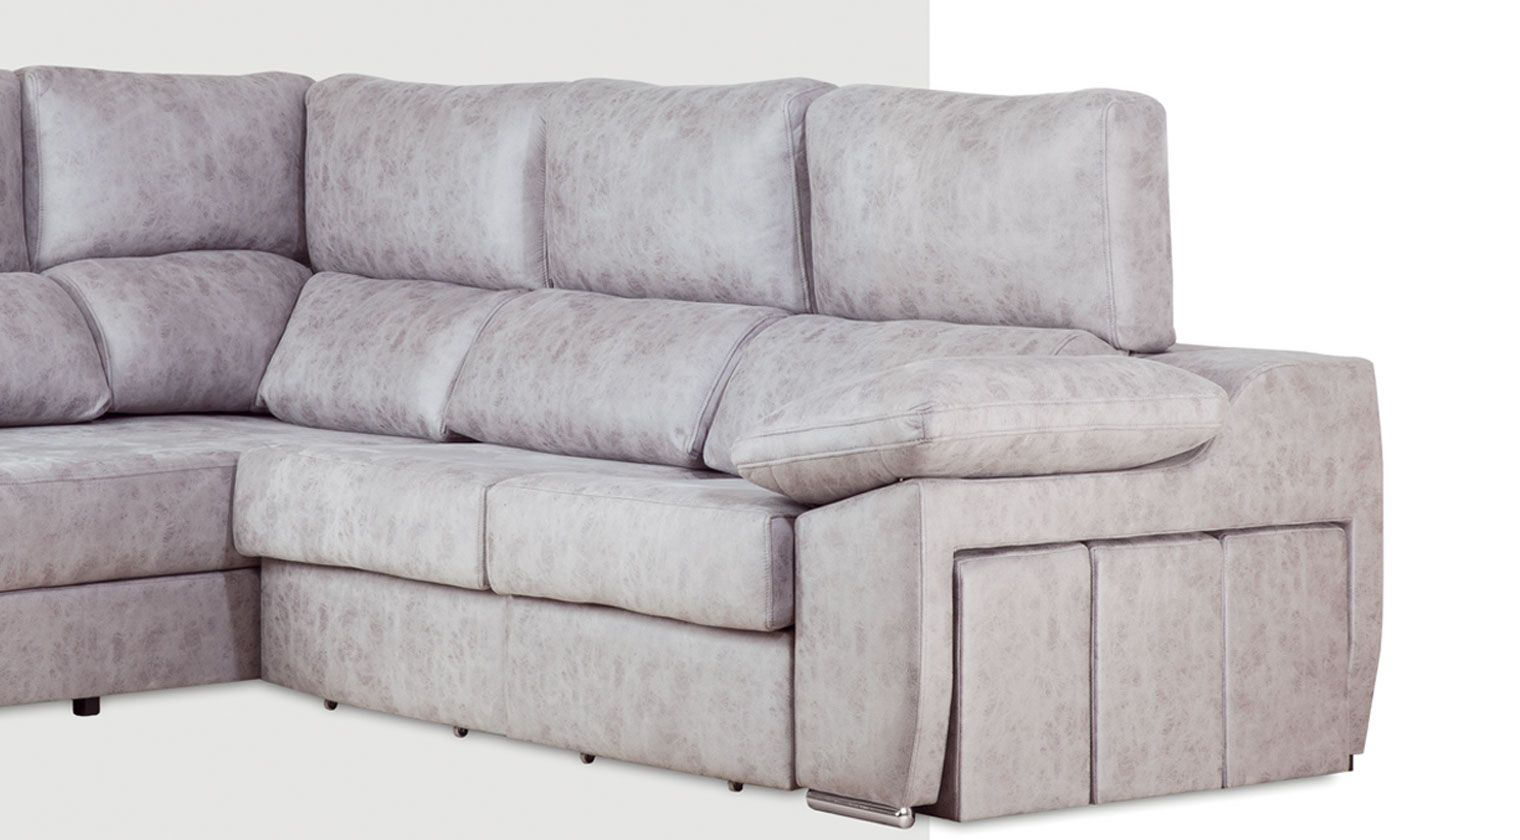 Sofas modernos madrid affordable sof cama with sofas for Sofas economicos madrid